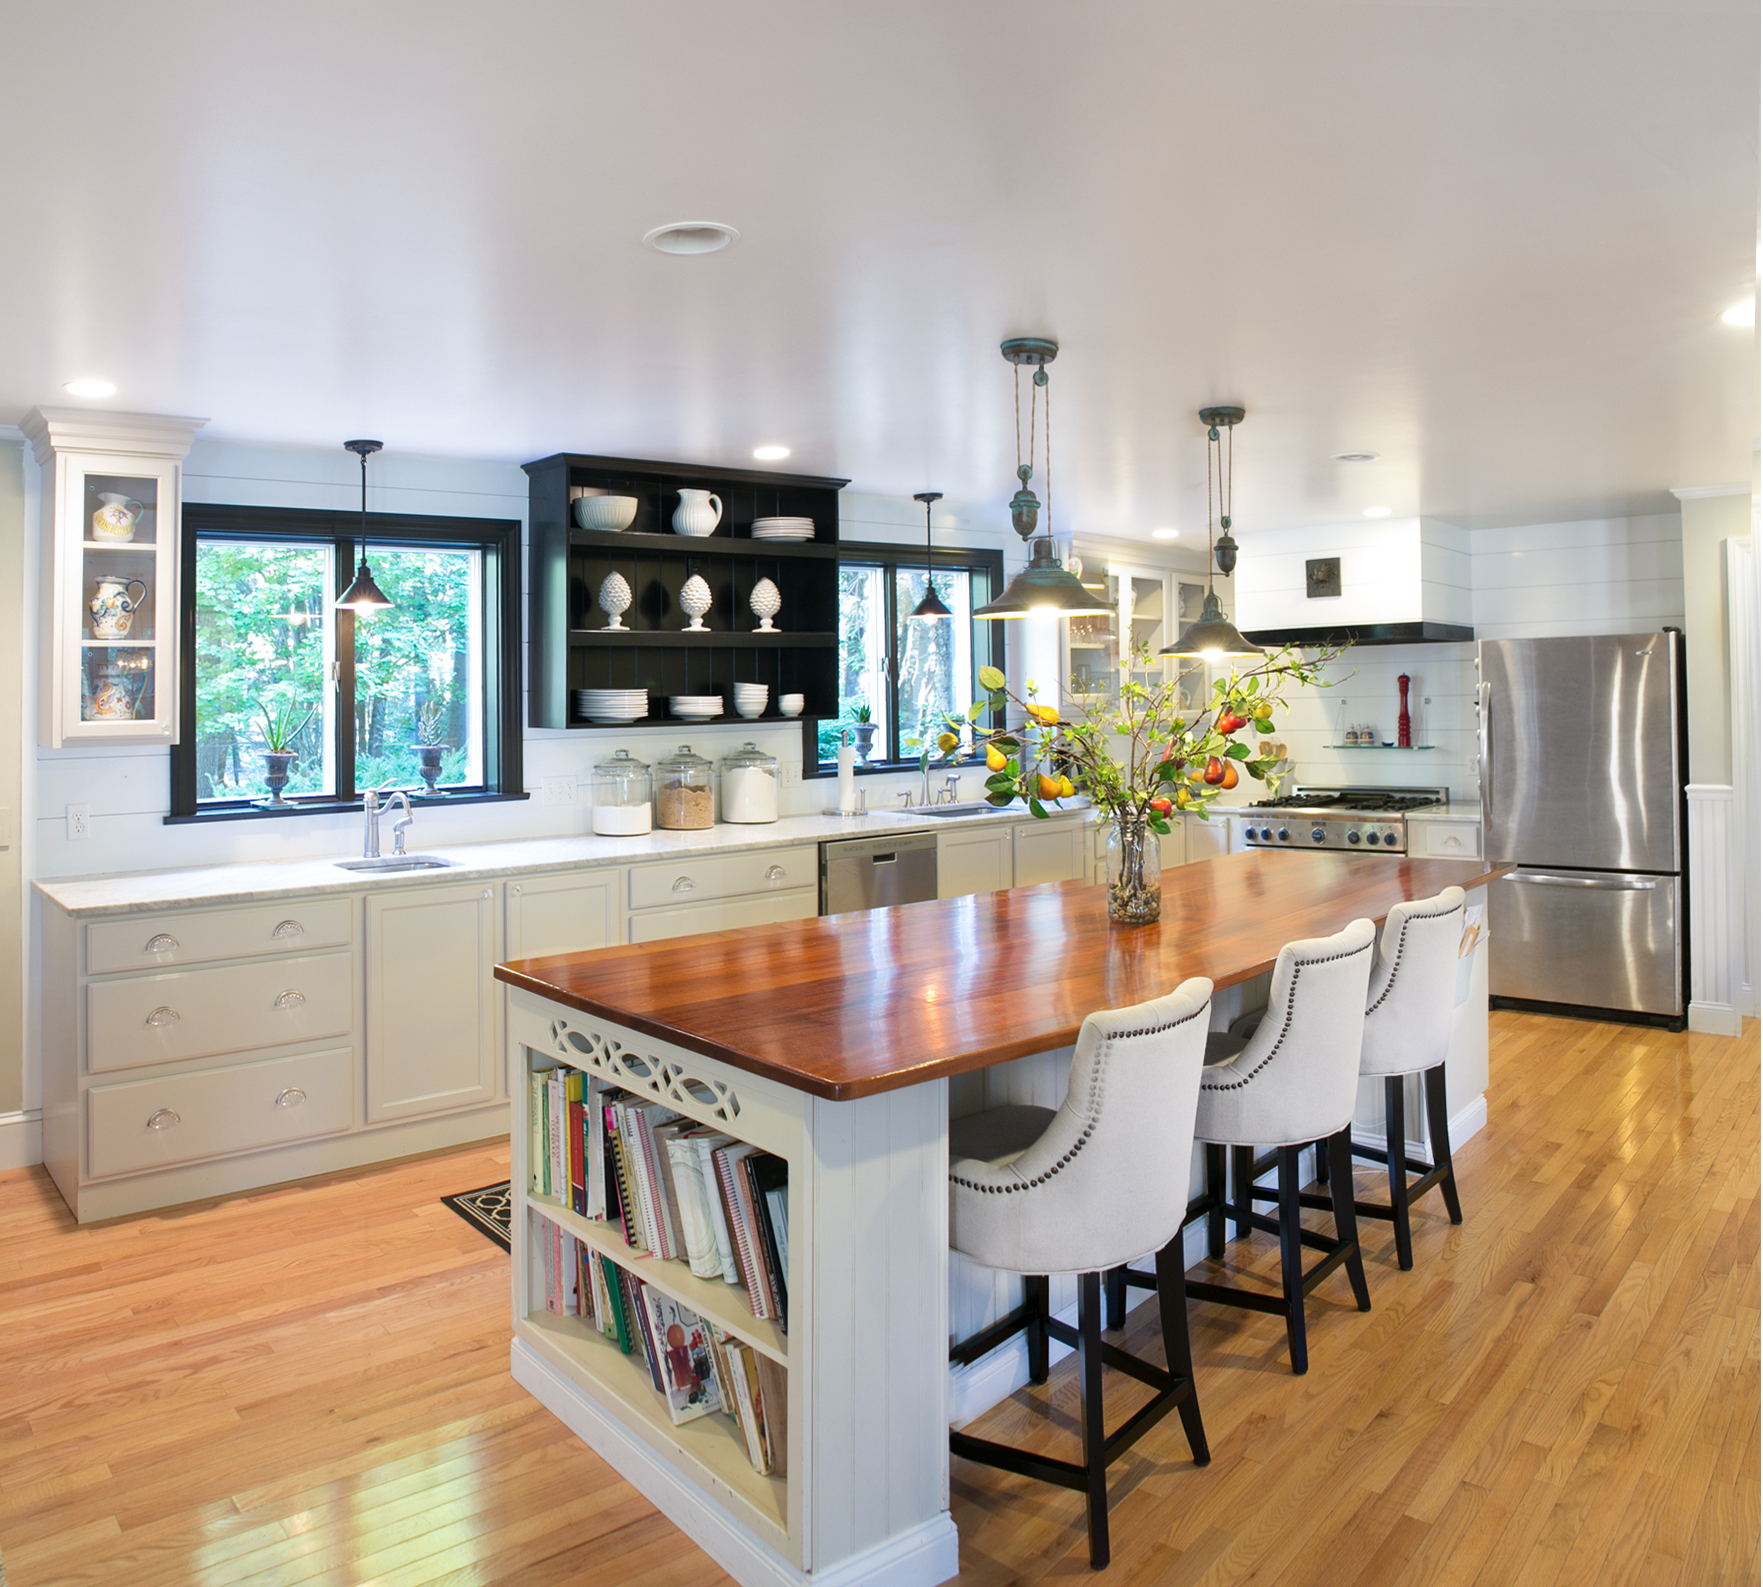 Culitvate Com Featured A Celia Bedilia Kitchen: Kitchen Renovation